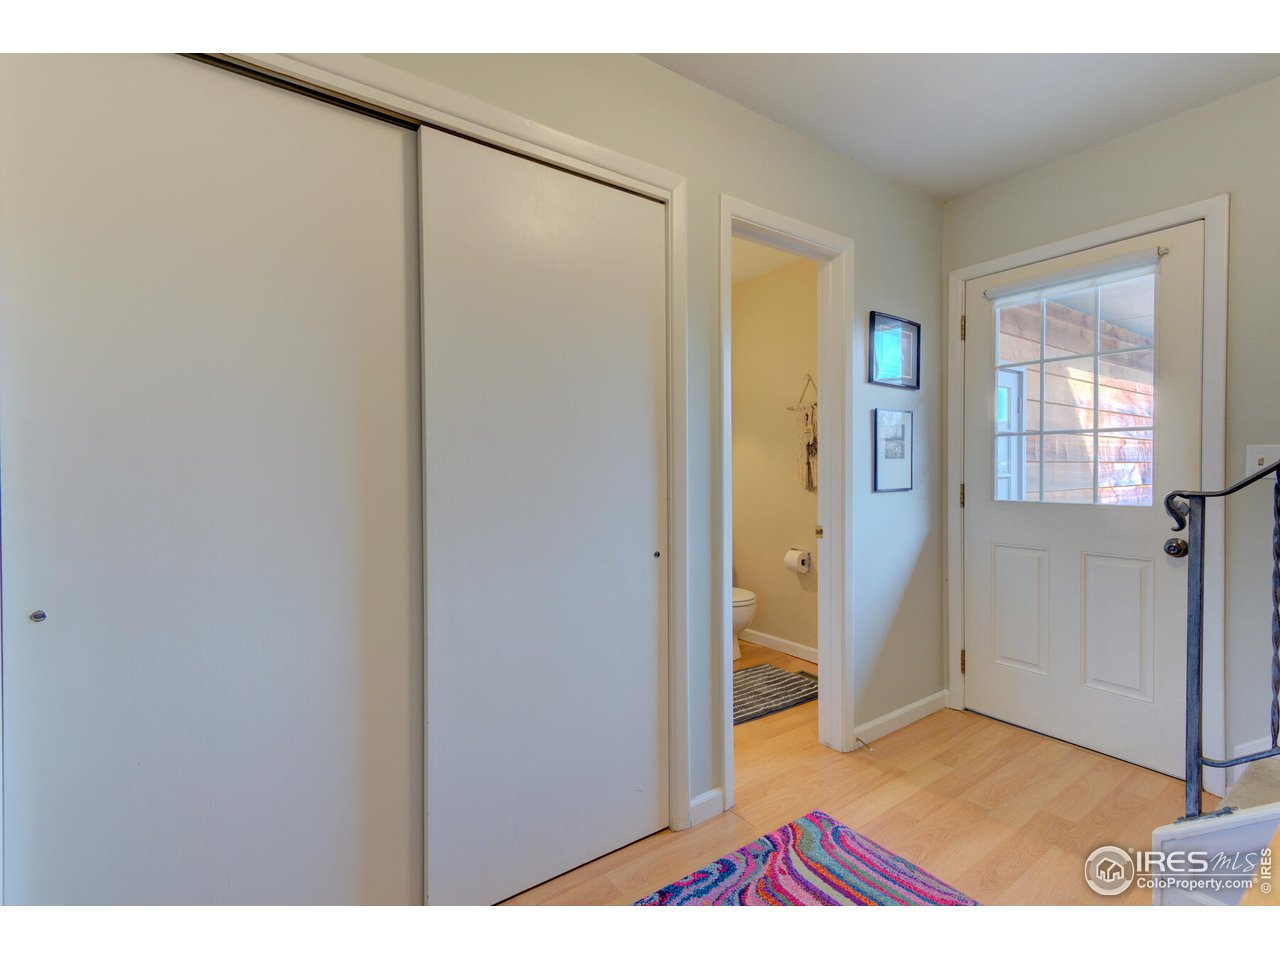 1/2 bath off Entry plus Coat Closet